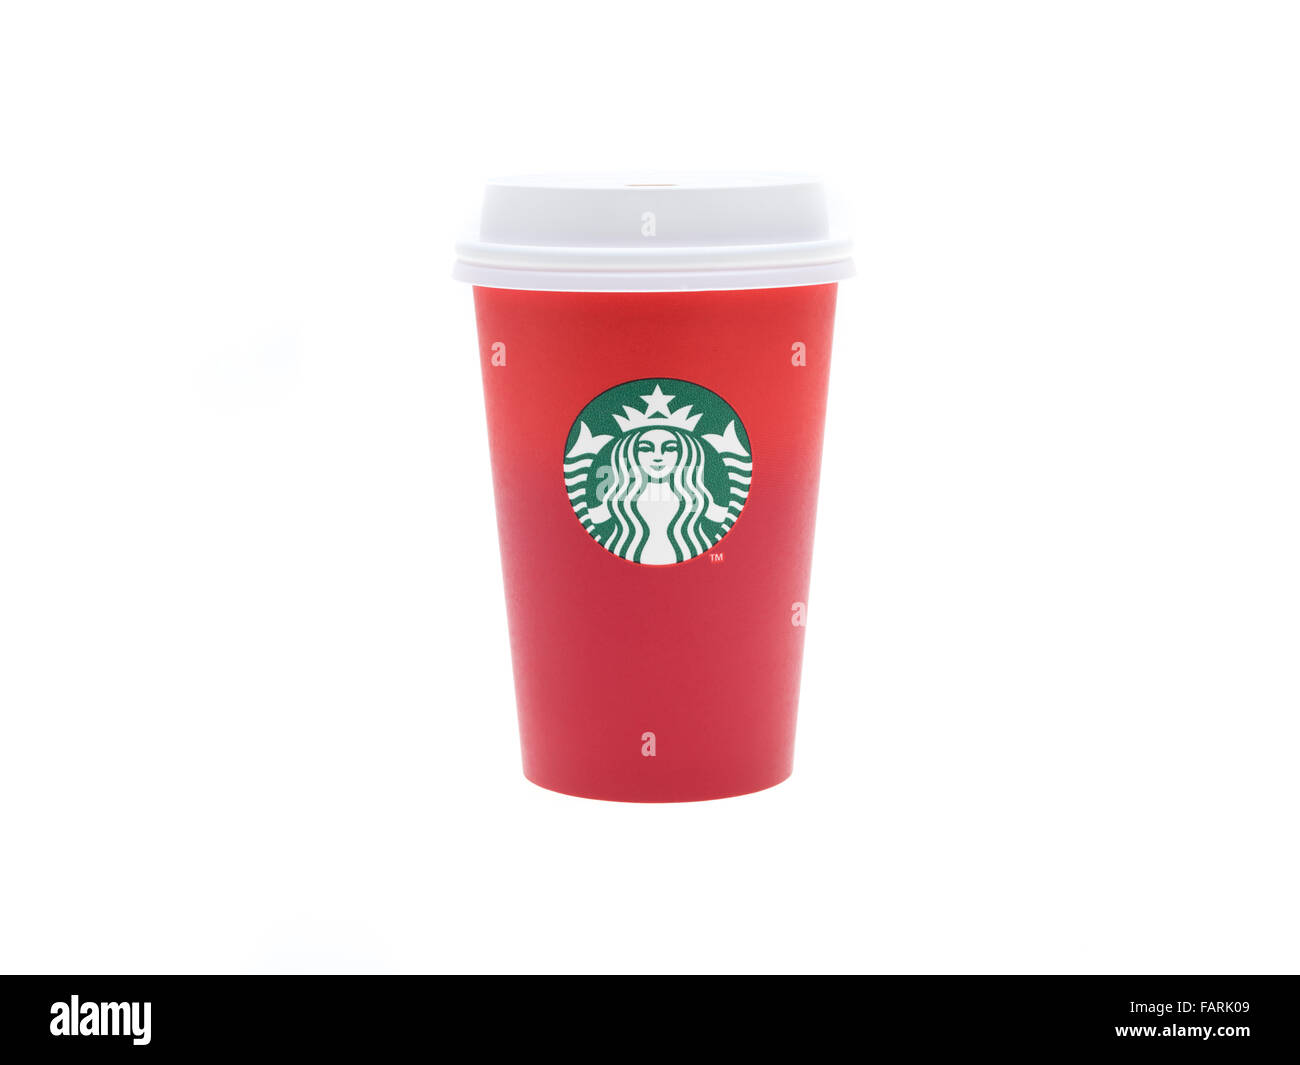 Starbucks Christmas 2015 red disposable coffee cup Stock Photo ...